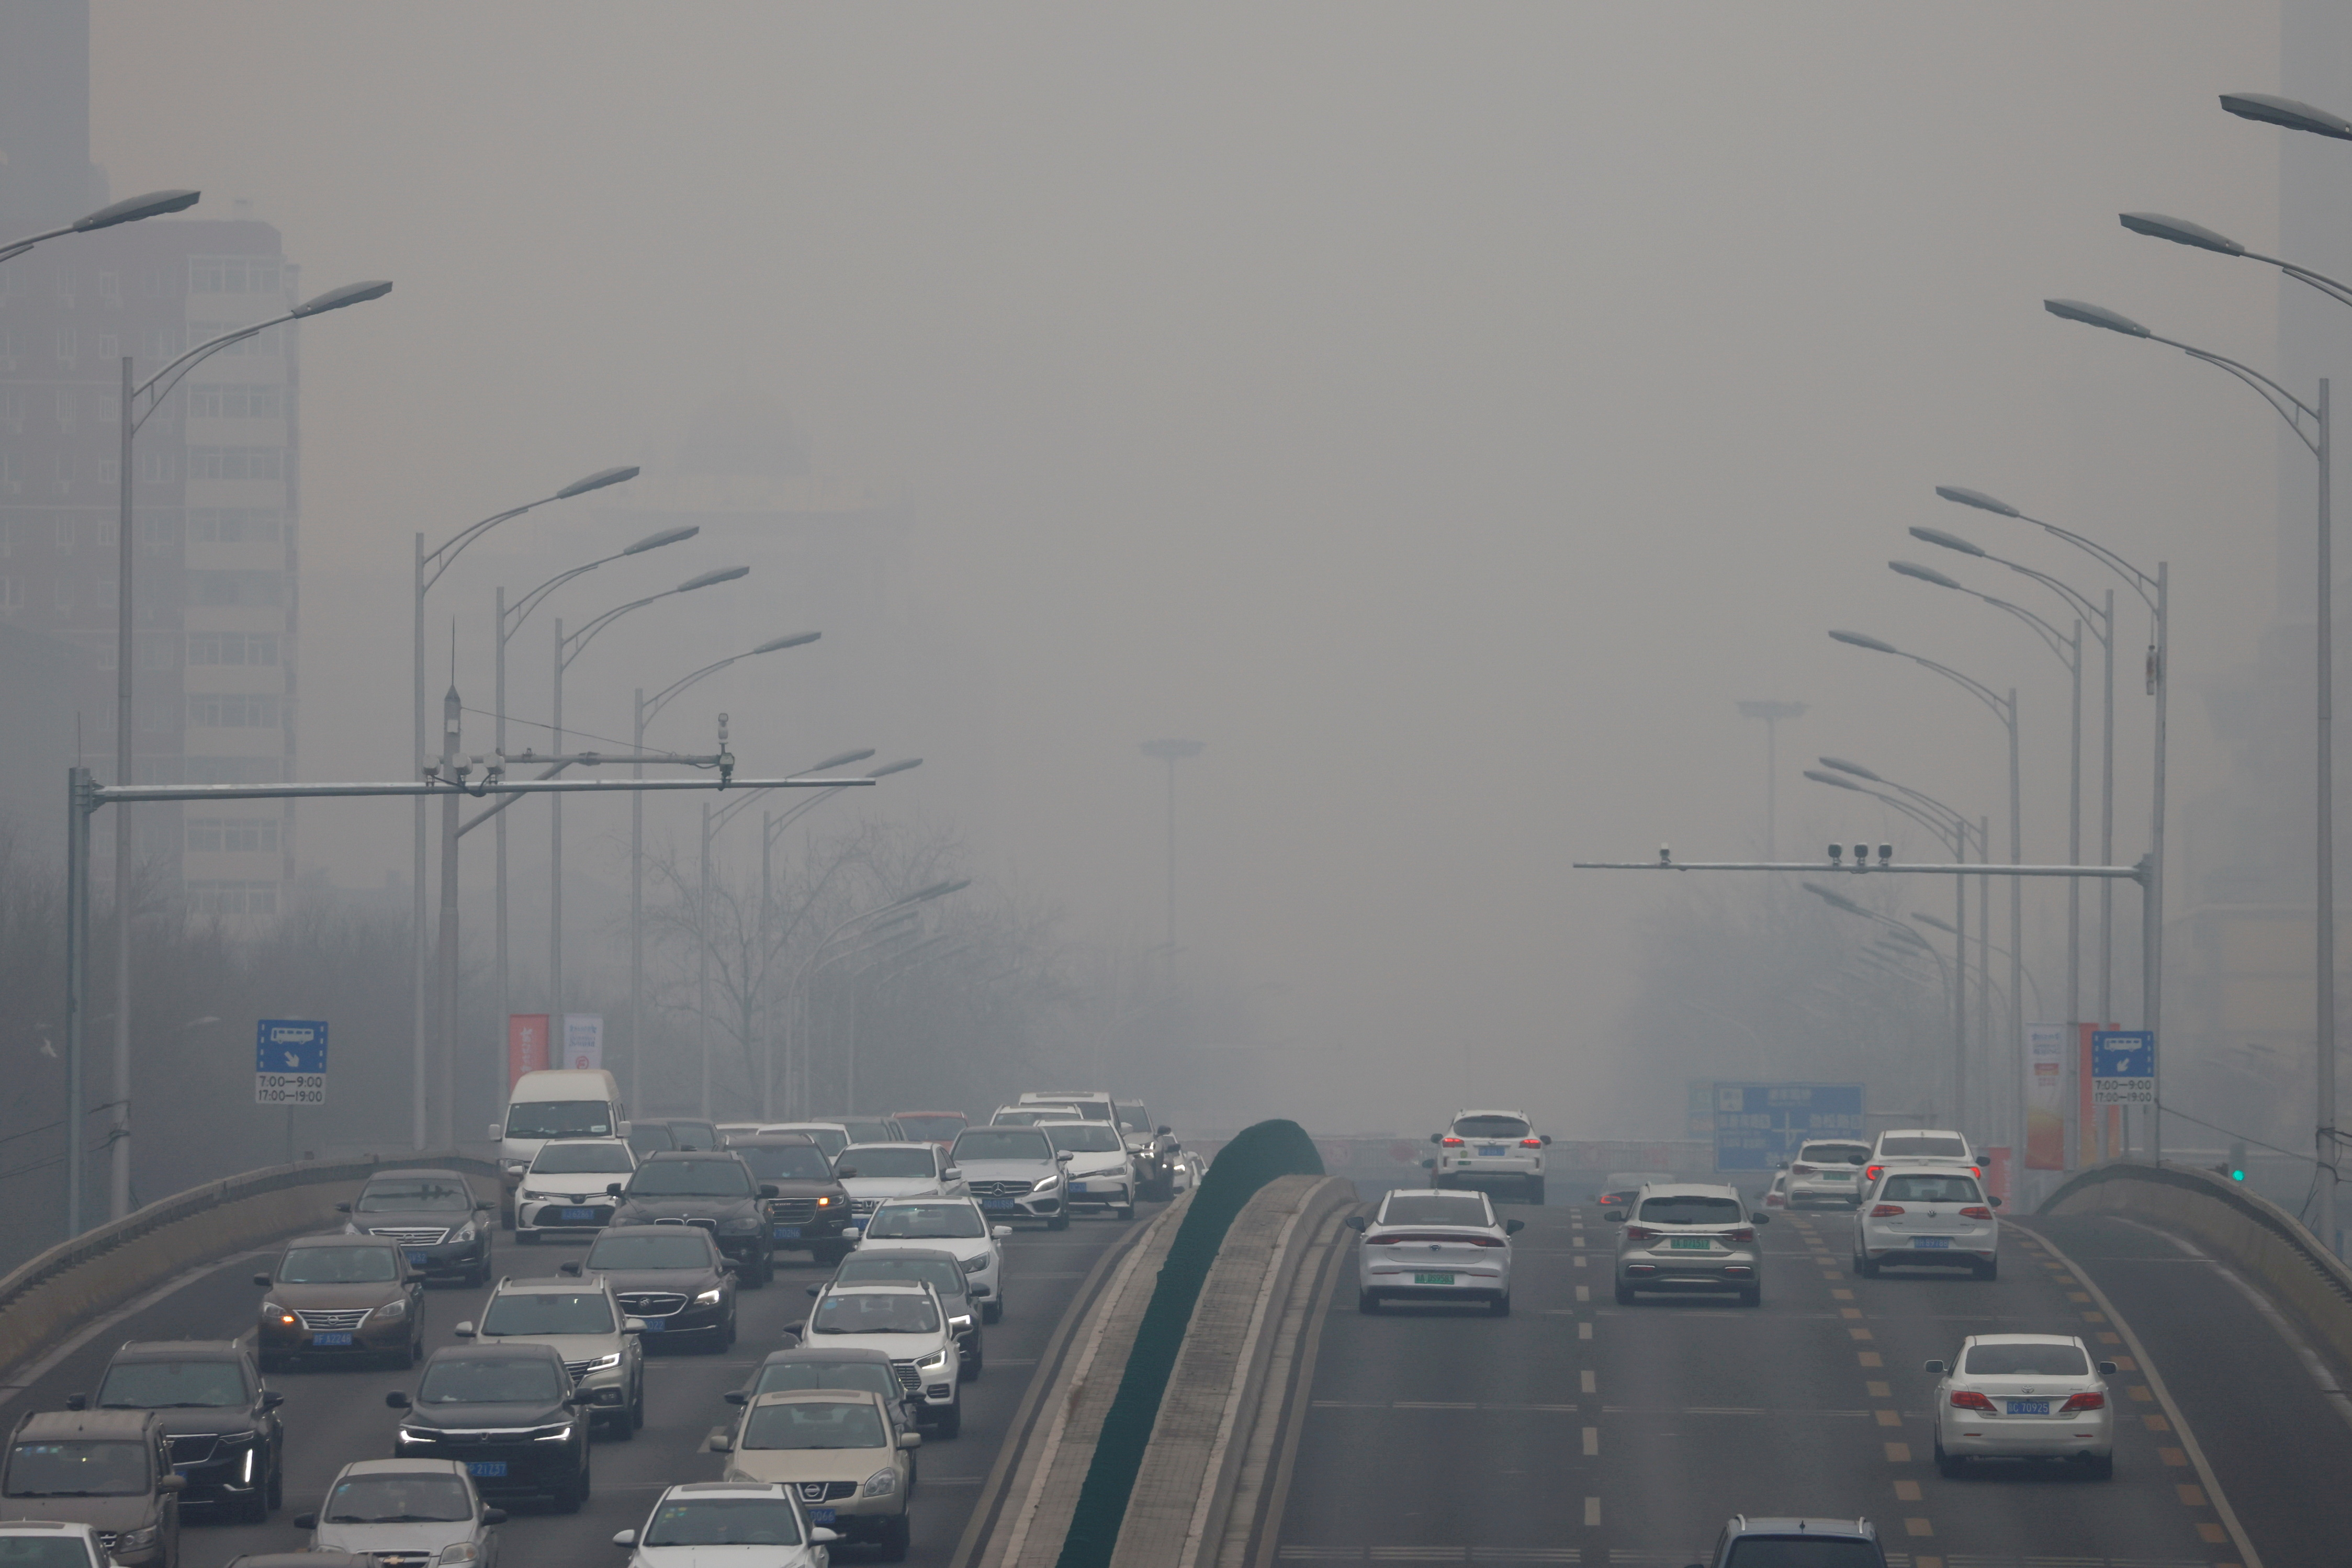 Cars move on a road during a day with polluted air in Beijing, China February 13, 2021. REUTERS/Carlos Garcia Rawlins/File Photo